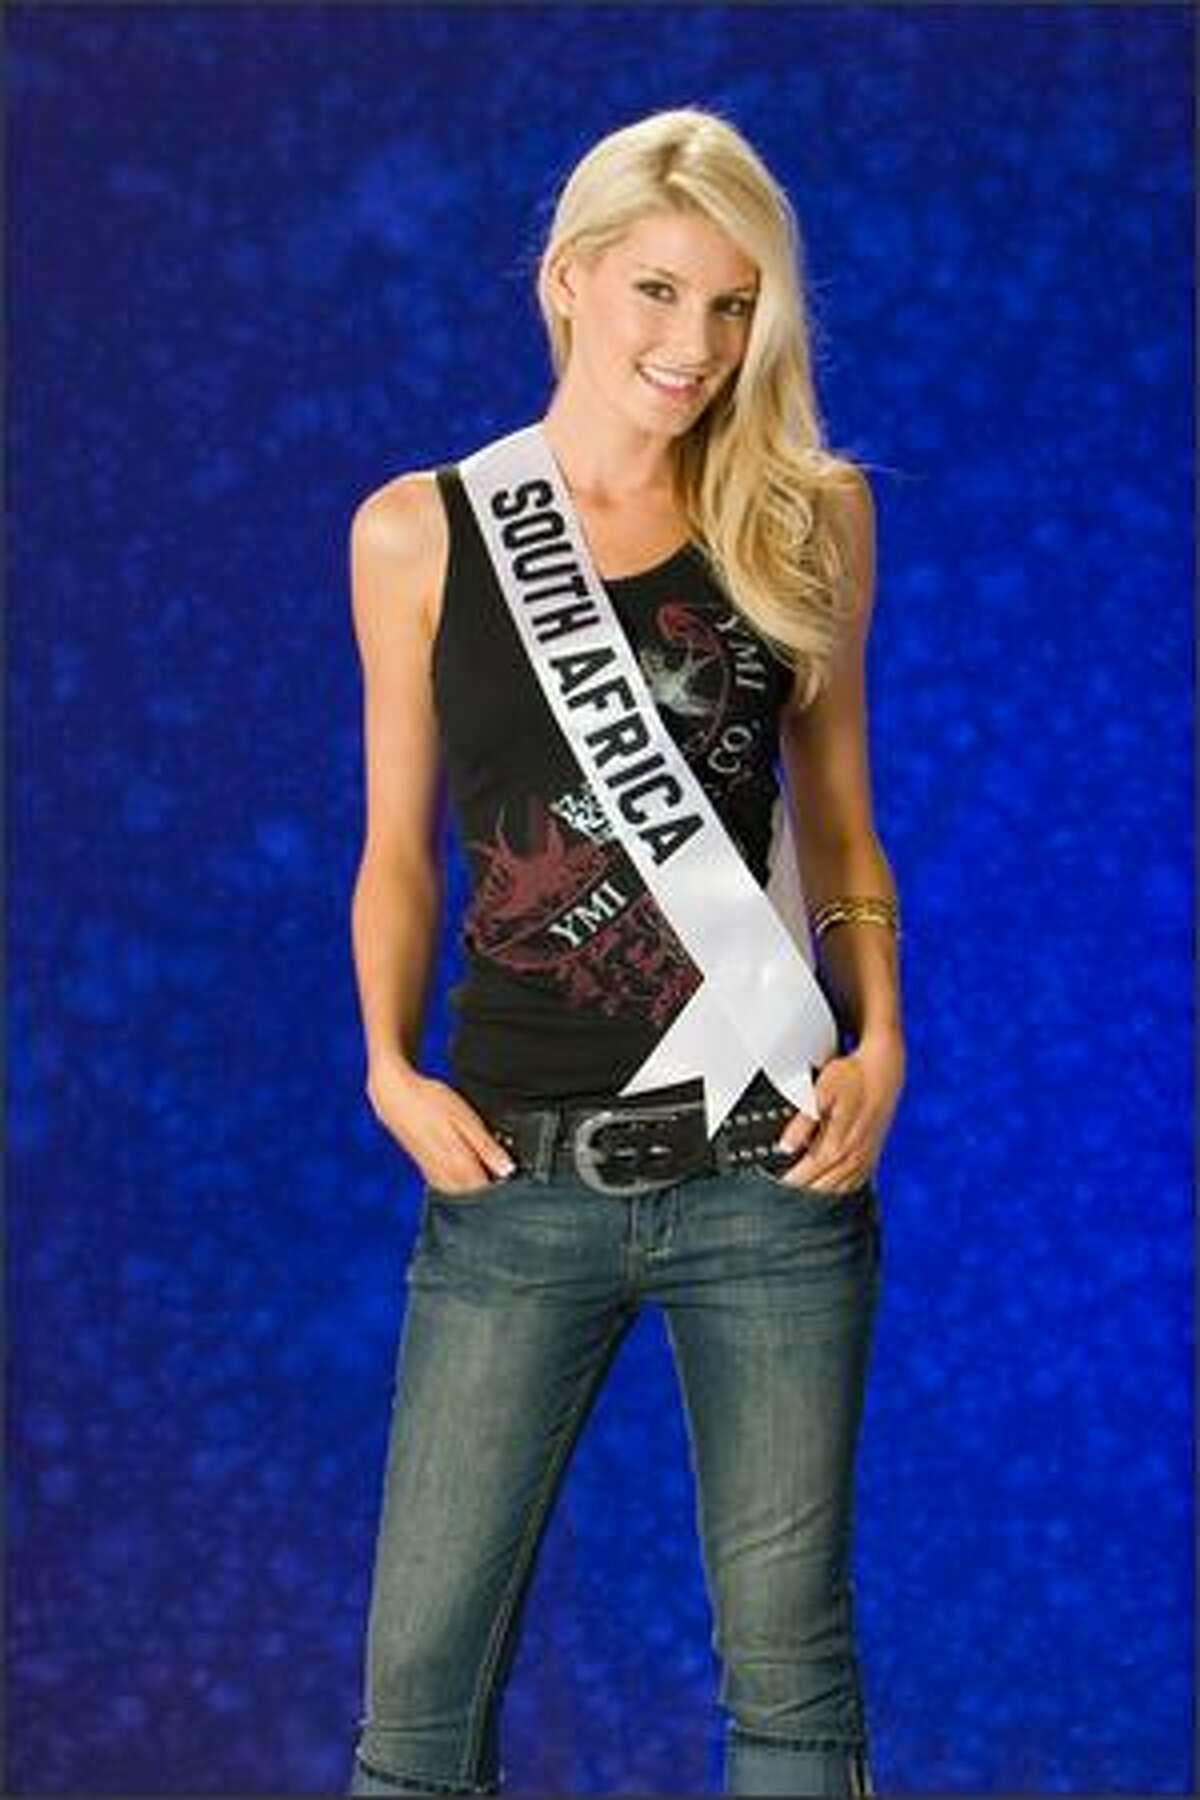 Megan Coleman, Miss South Africa 2007.